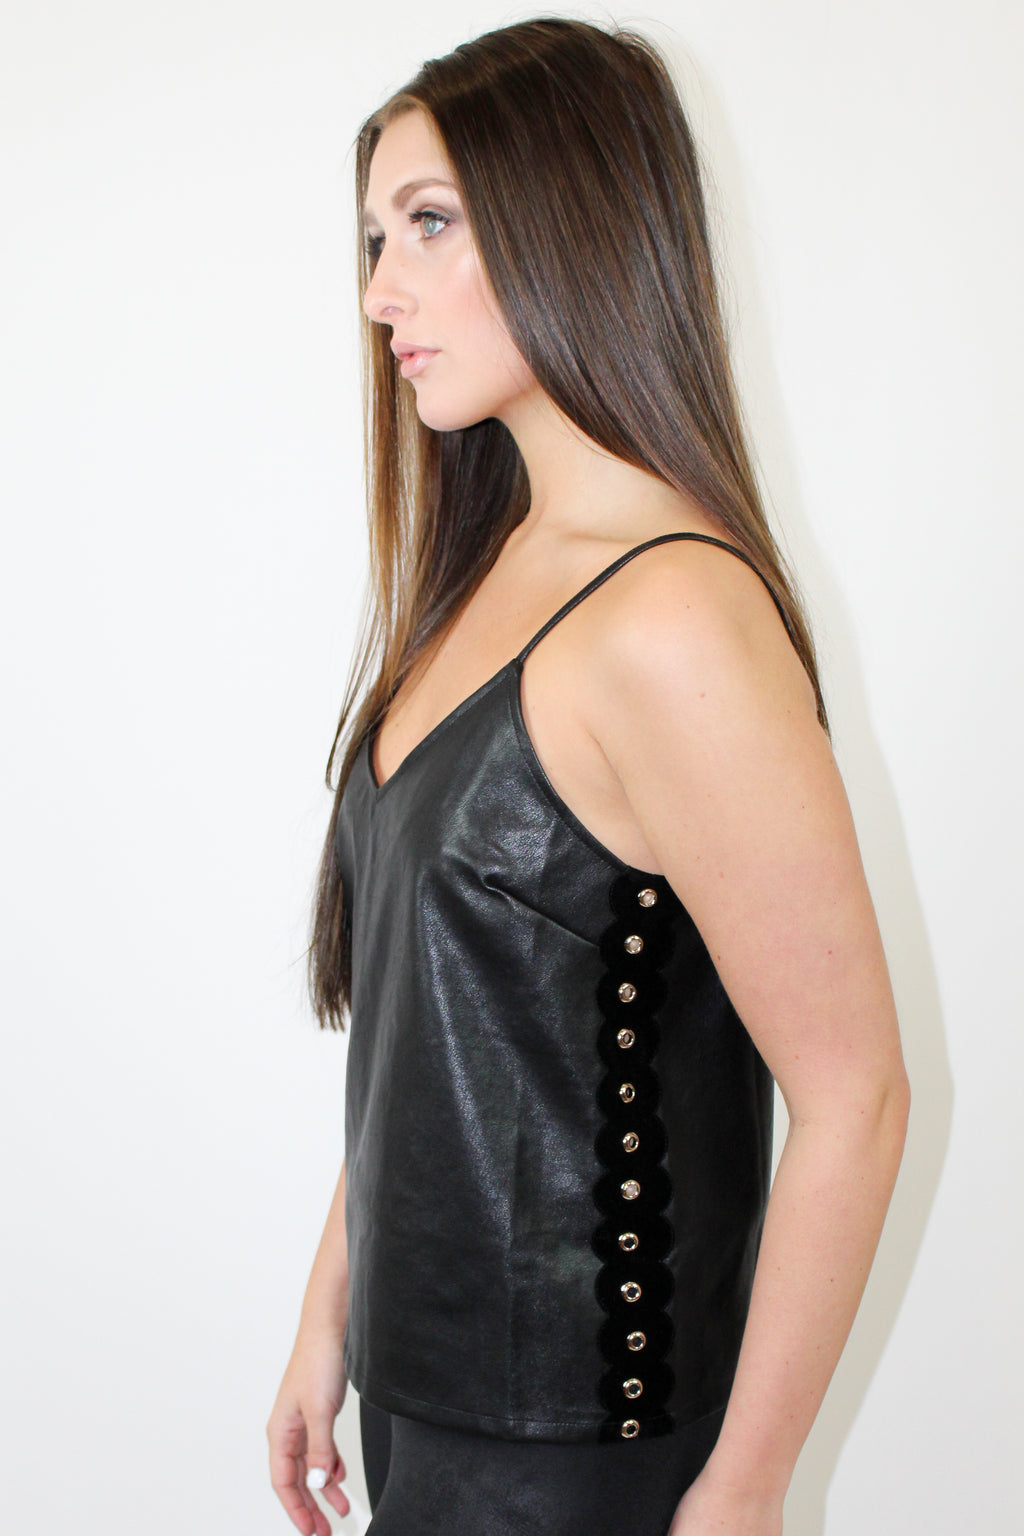 You should be so excited to wear the Cheeky Leather Cami for a girls night out! Pair this top with jeans and heels for an elevated look. The Details: Leather cami. Side scallop contrast. Side grommet detailing. Adjustable shoulder straps. Color: Black. Fits true to size. Care: Hand wash only and lay flat to dry...